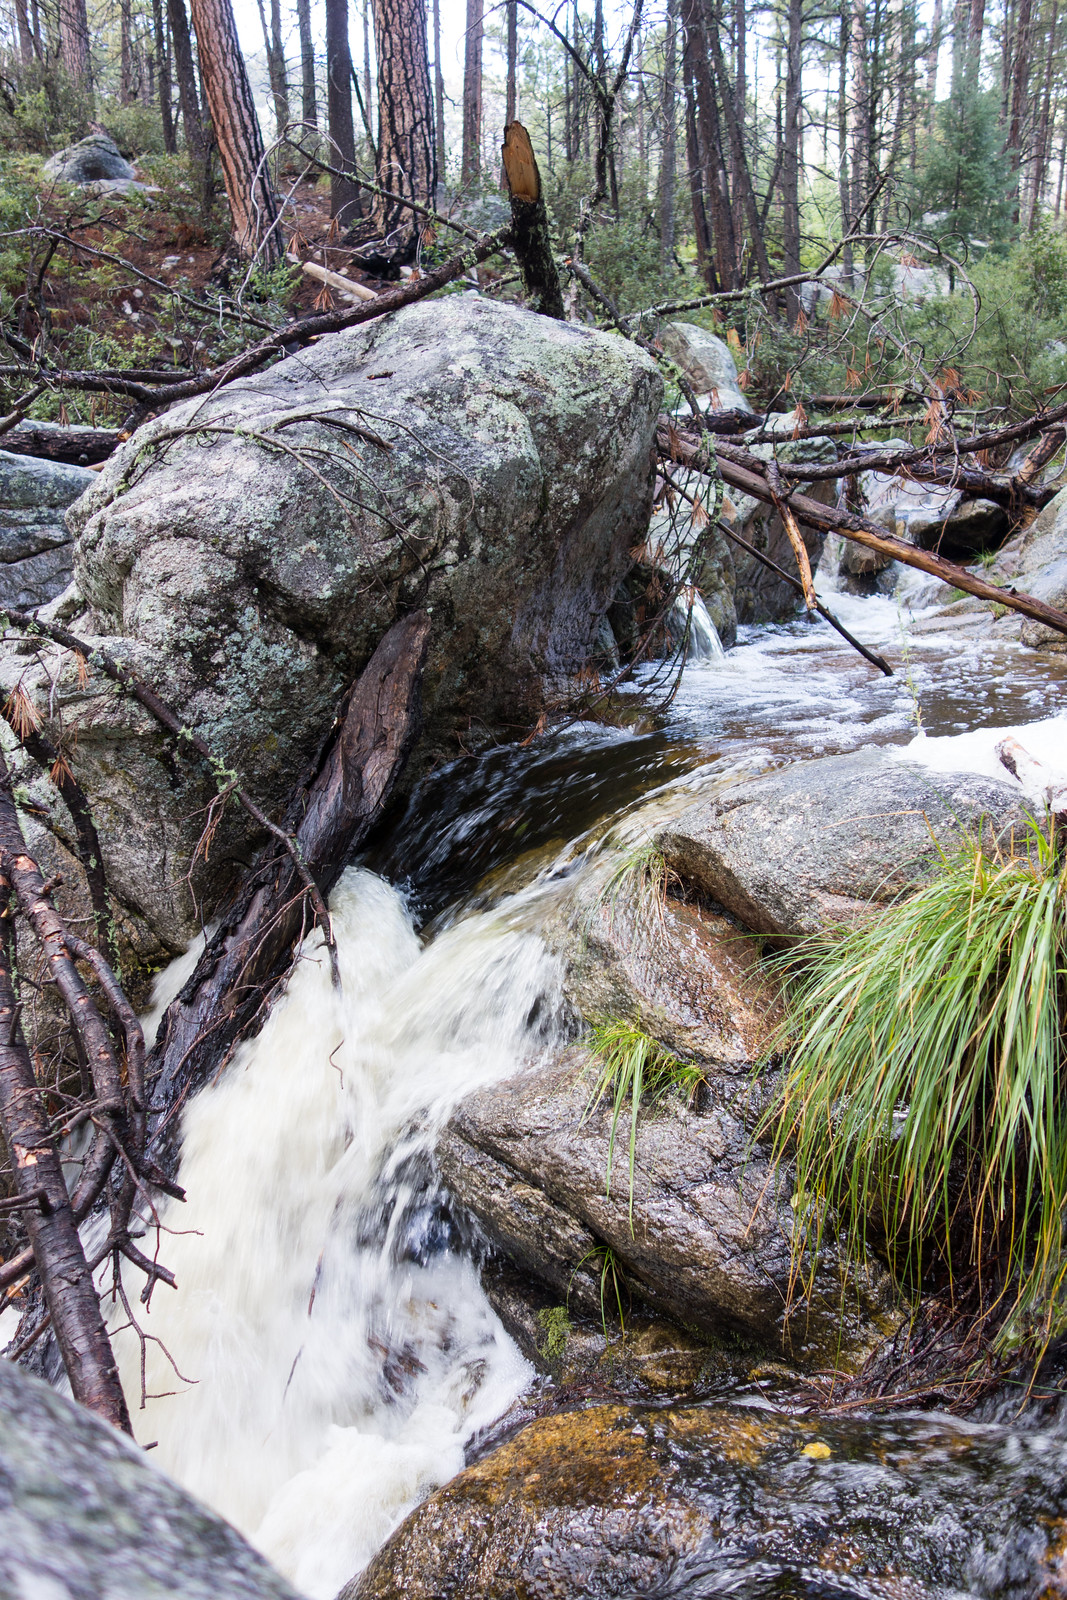 1409 Rushing Water Near the Wilderness of Rock Trail